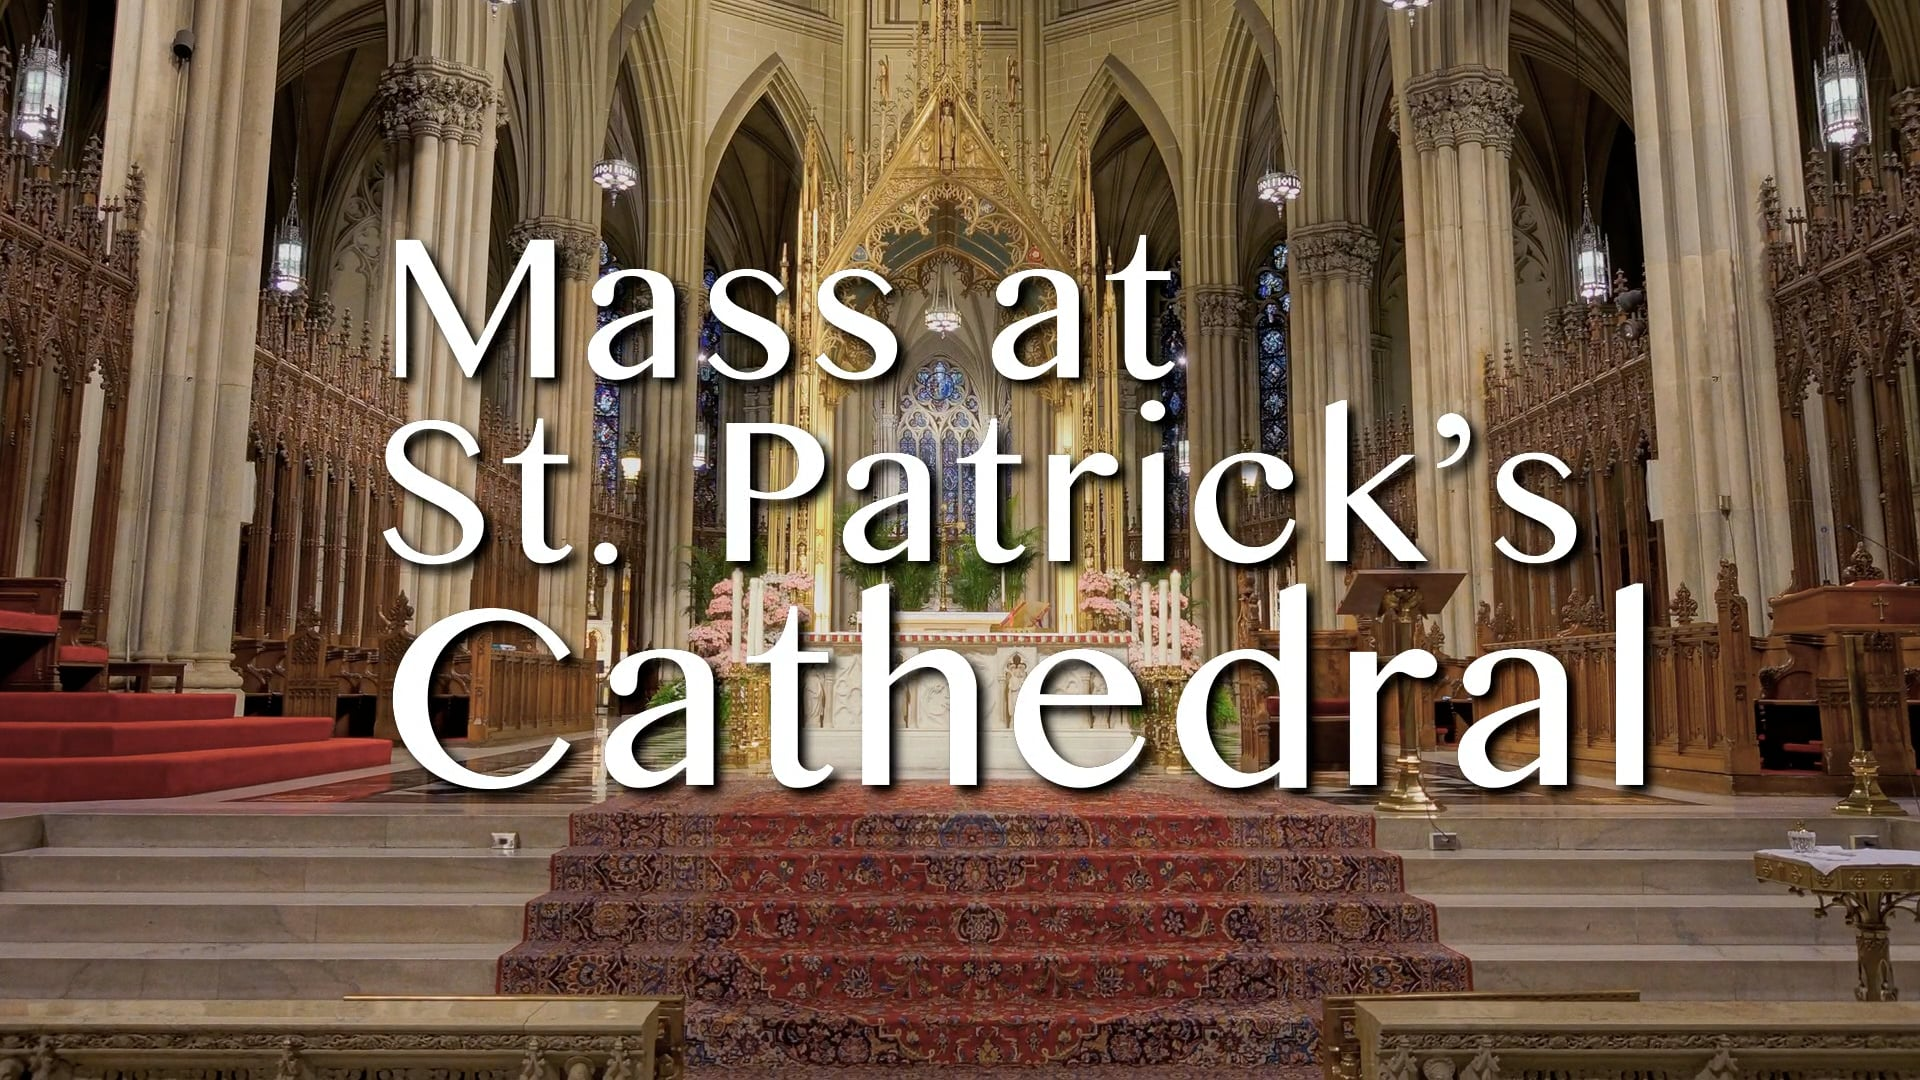 Mass from St. Patrick's Cathedral - October 15, 2021